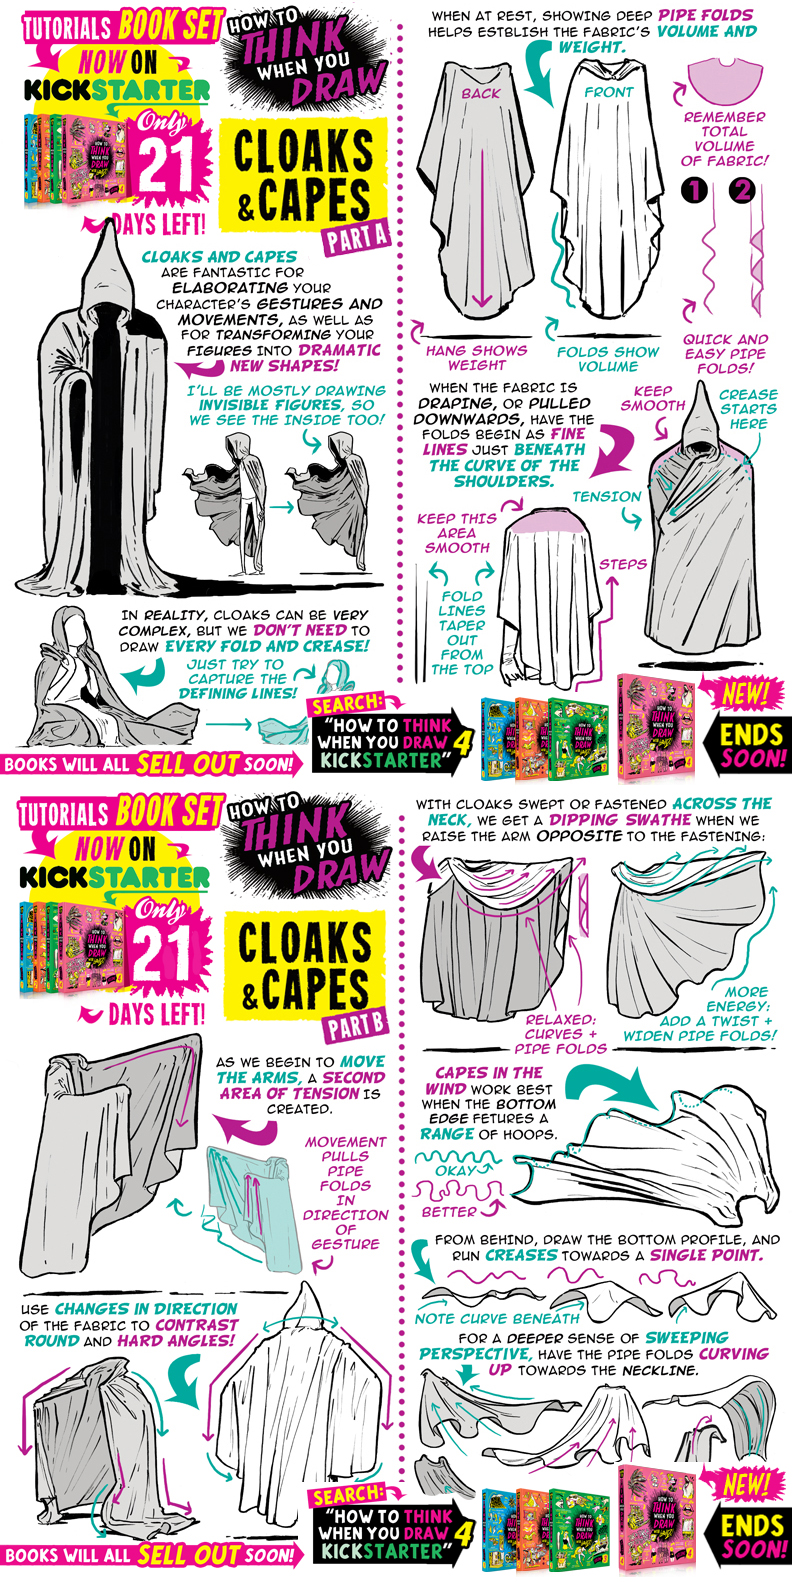 CAPES! Just 21 DAYS to get the tutorials BOOKS!!!!